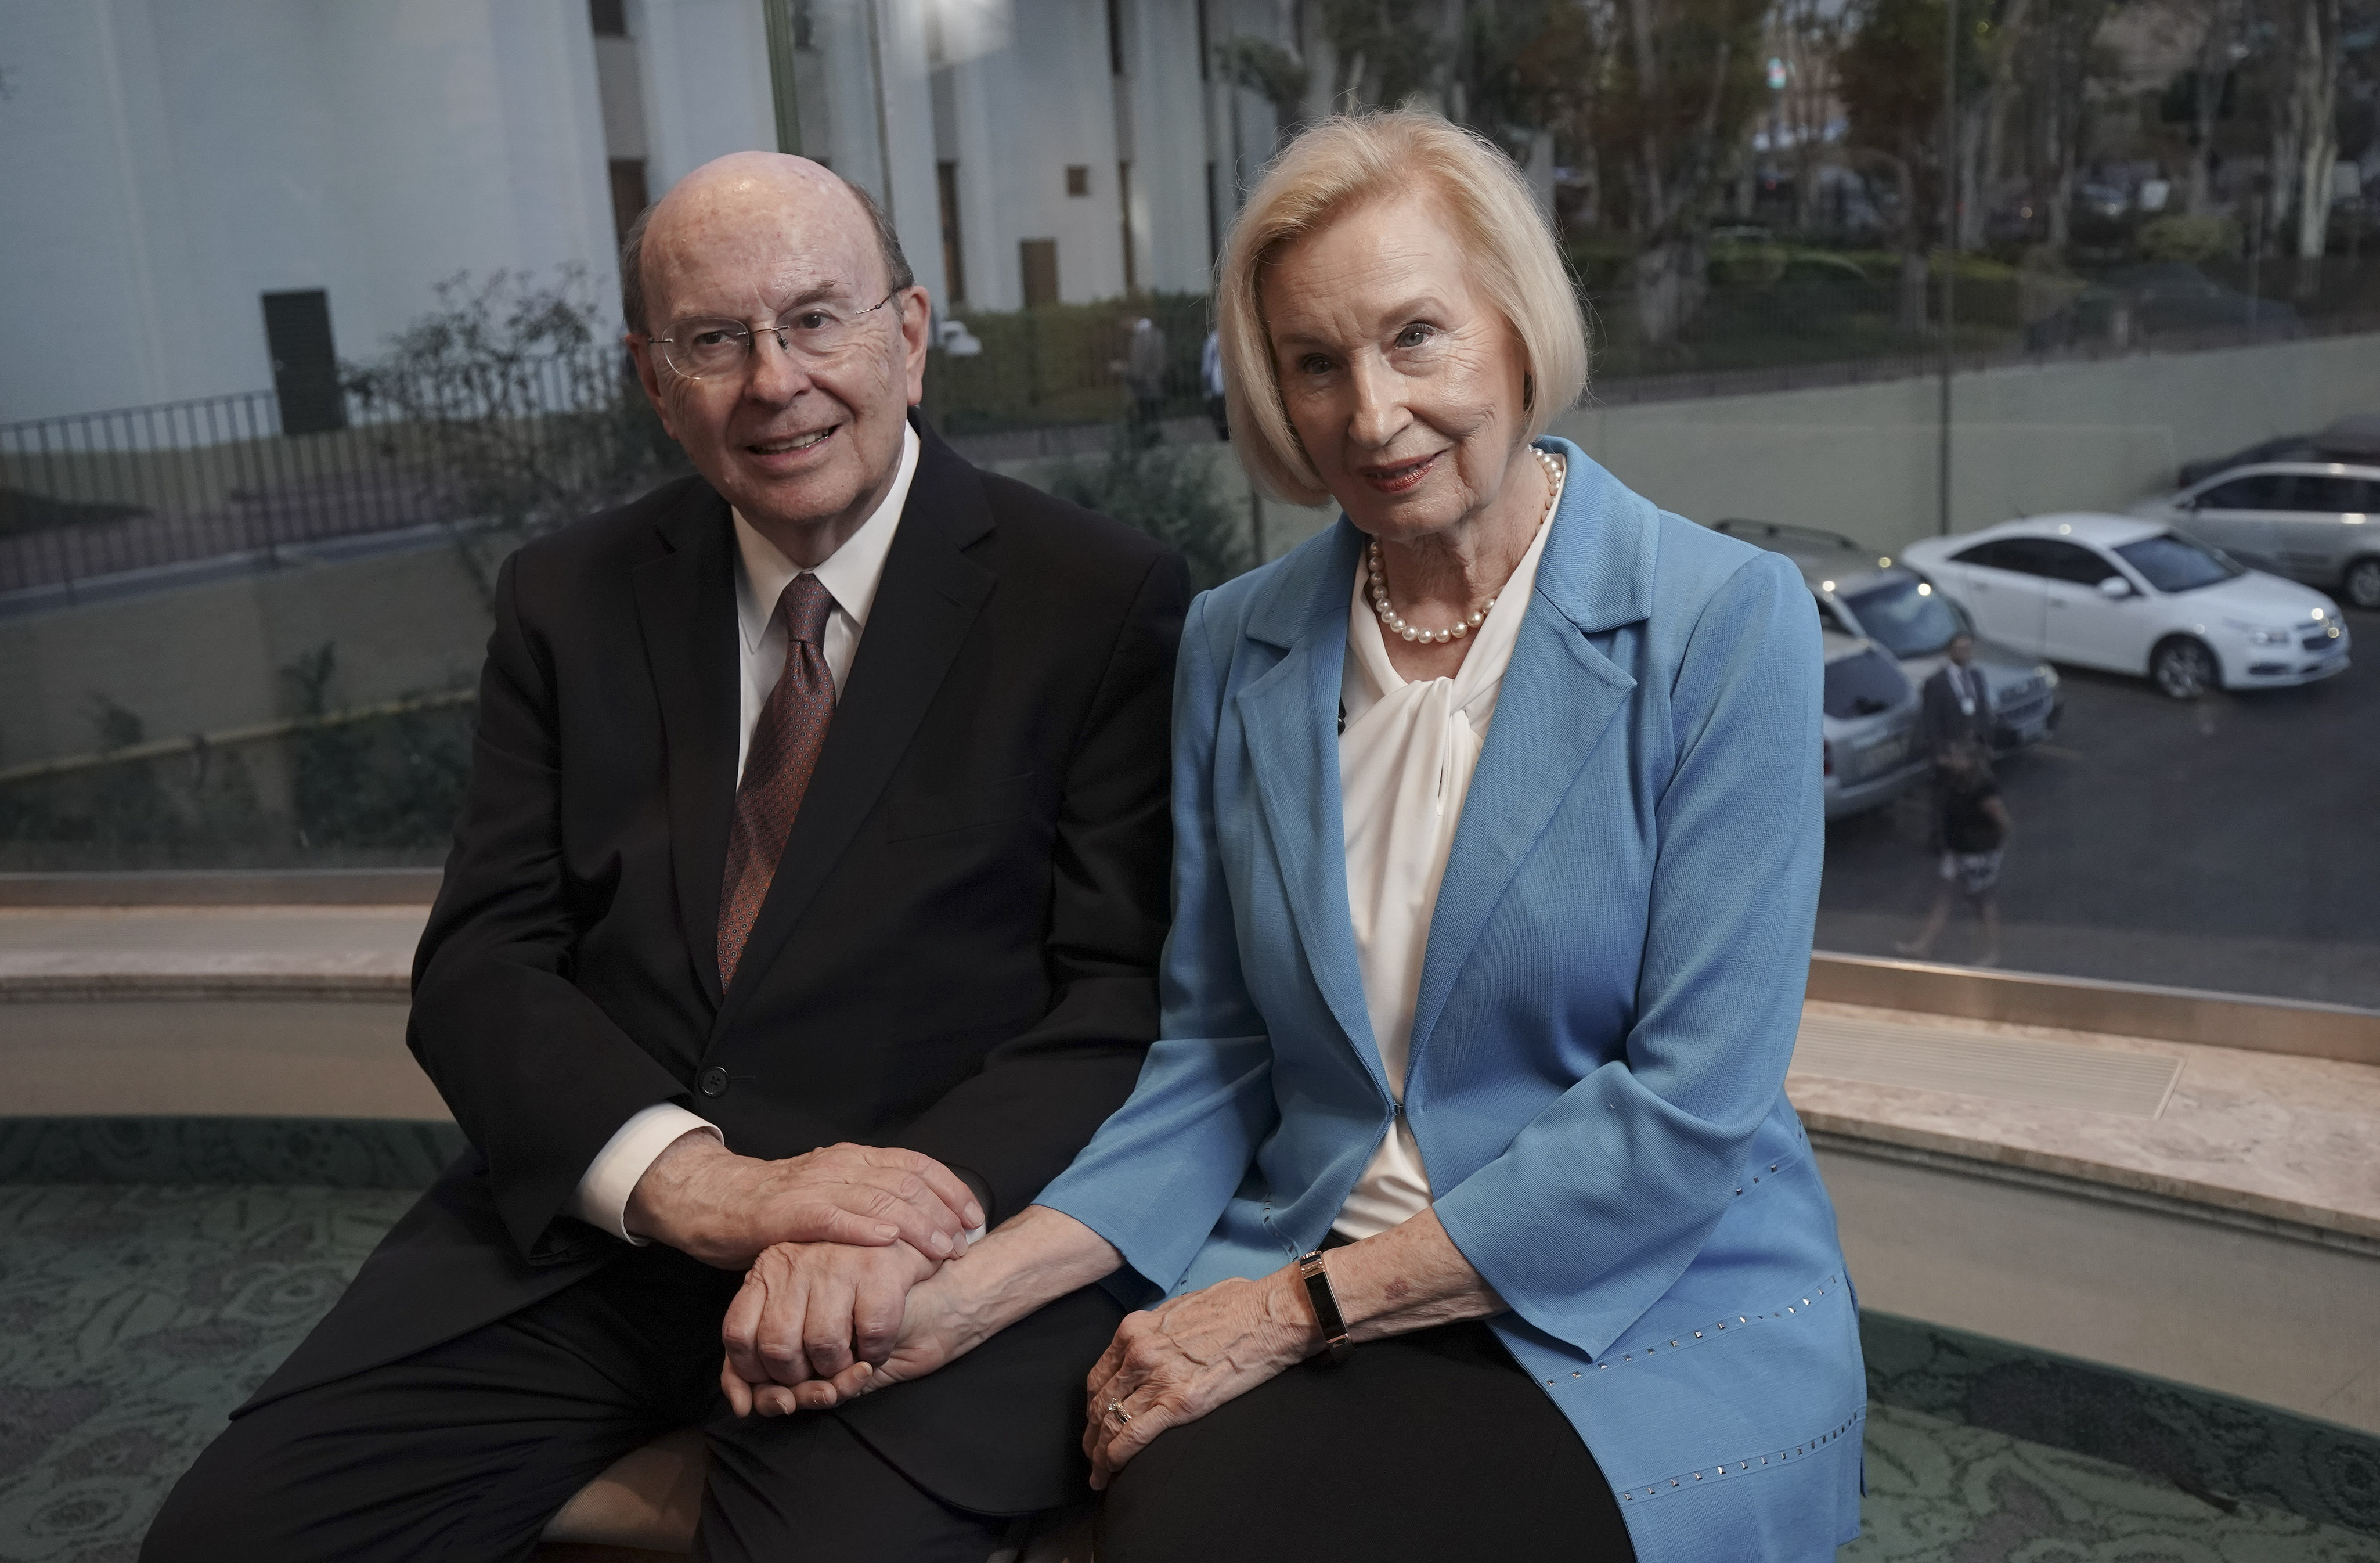 Elder Quentin L. Cook of the Quorum of the Twelve Apostles and his wife, Sister Mary Cook, are interviewed in Sao Paulo, Brazil, on Aug. 31, 2019.